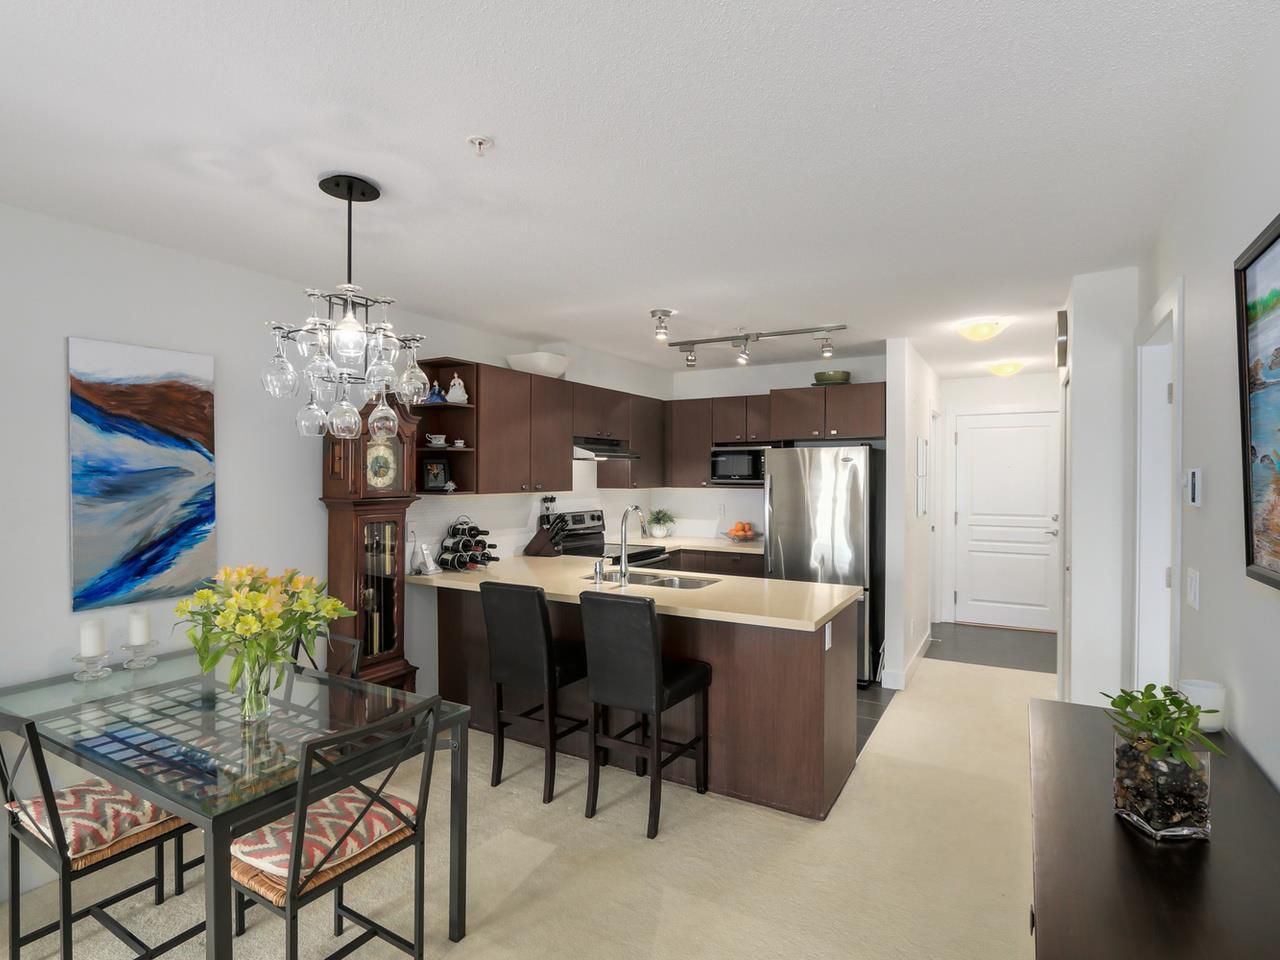 """Main Photo: 306 4550 FRASER Street in Vancouver: Fraser VE Condo for sale in """"CENTURY"""" (Vancouver East)  : MLS®# R2038121"""